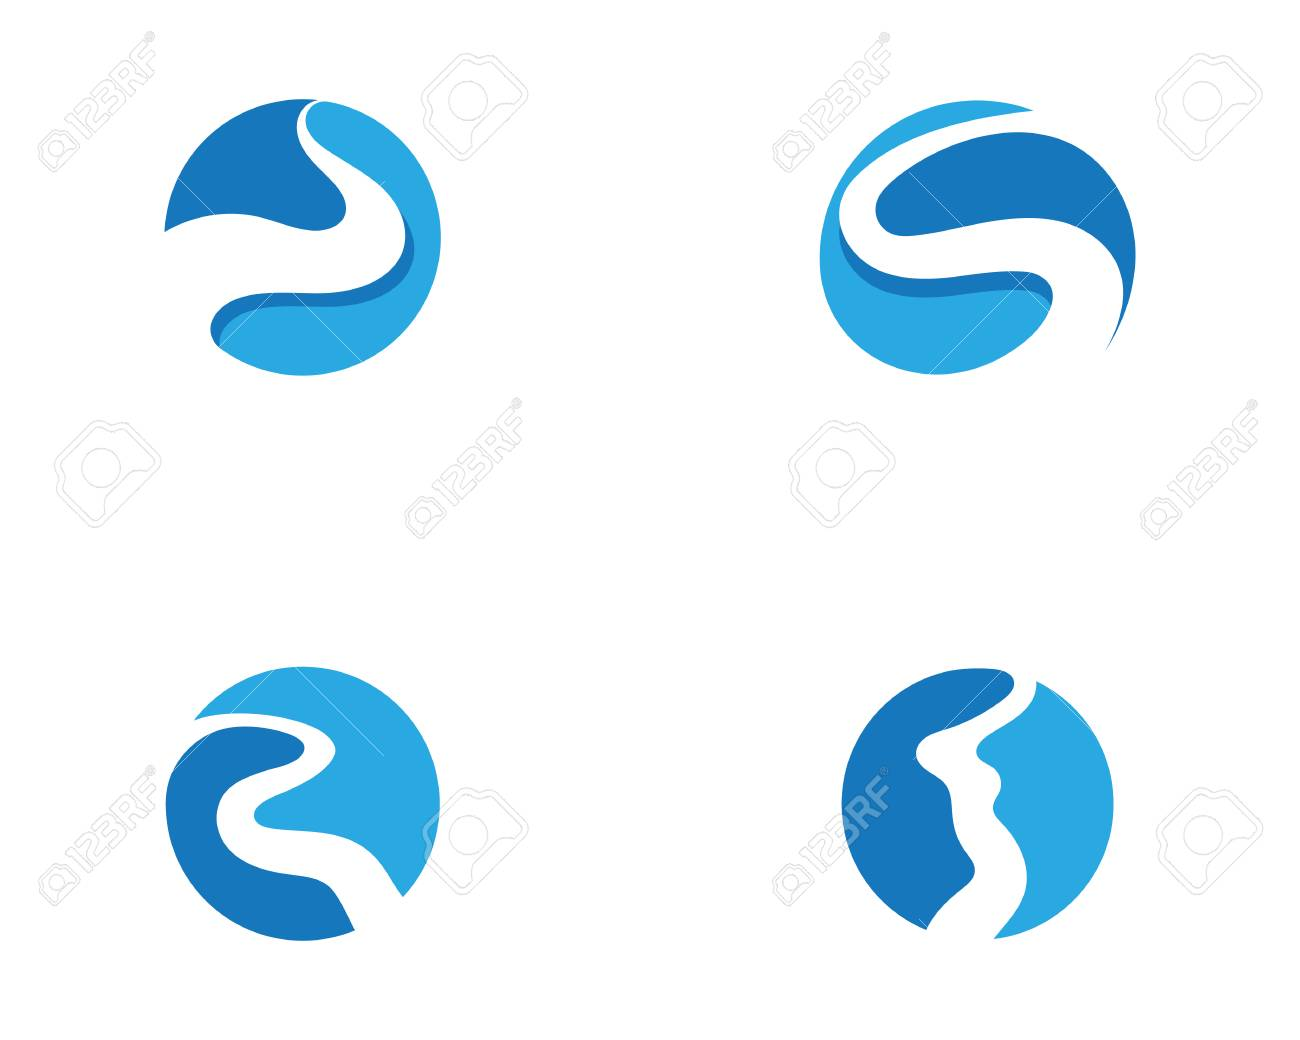 river vector icon illustration design royalty free cliparts vectors and stock illustration image 116517486 river vector icon illustration design